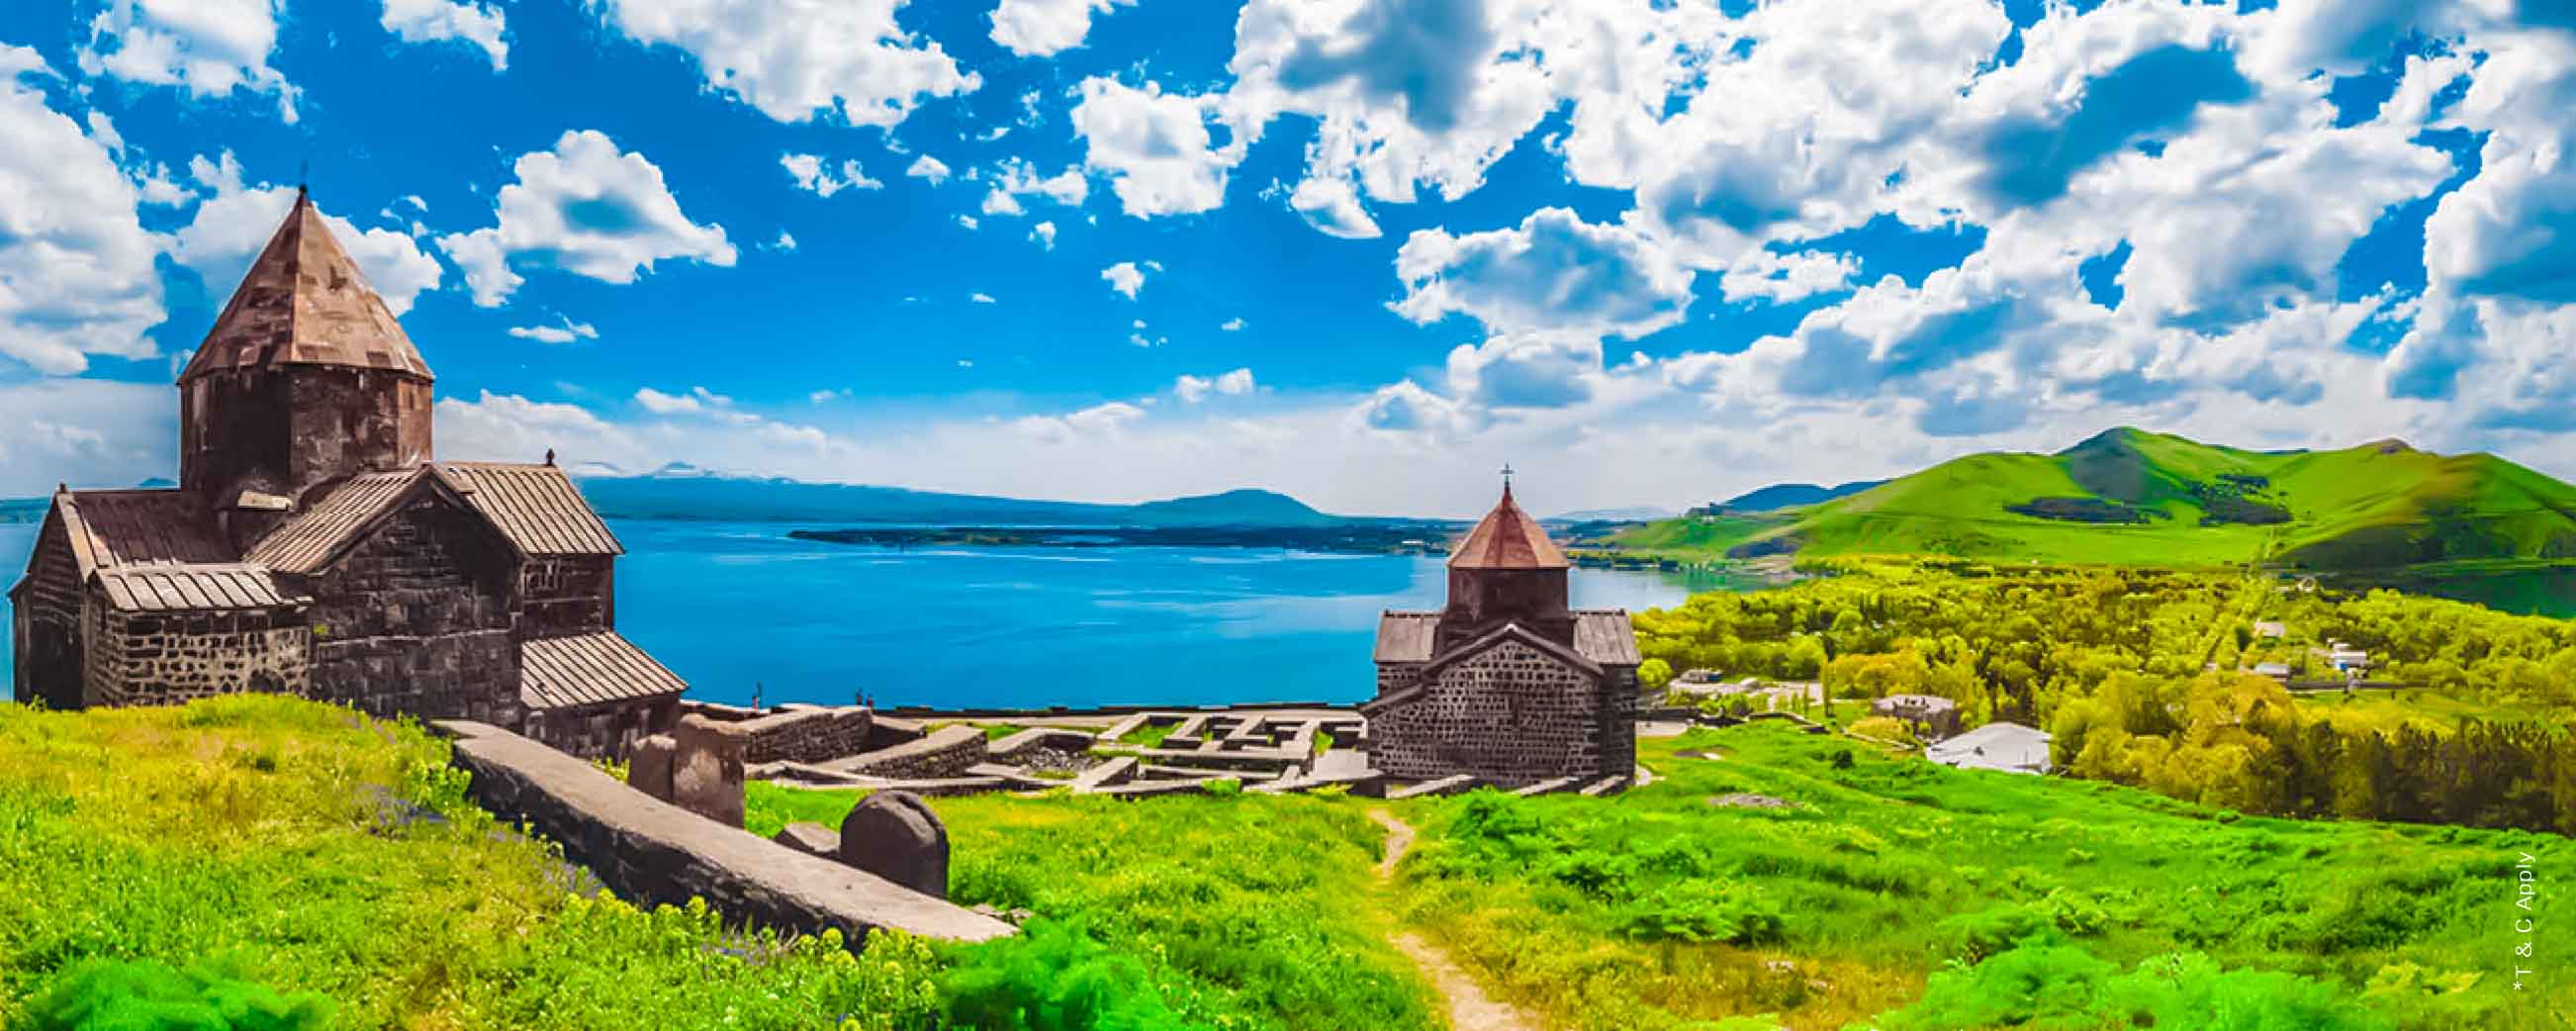 Armenia Aed 1499 Smart Travel